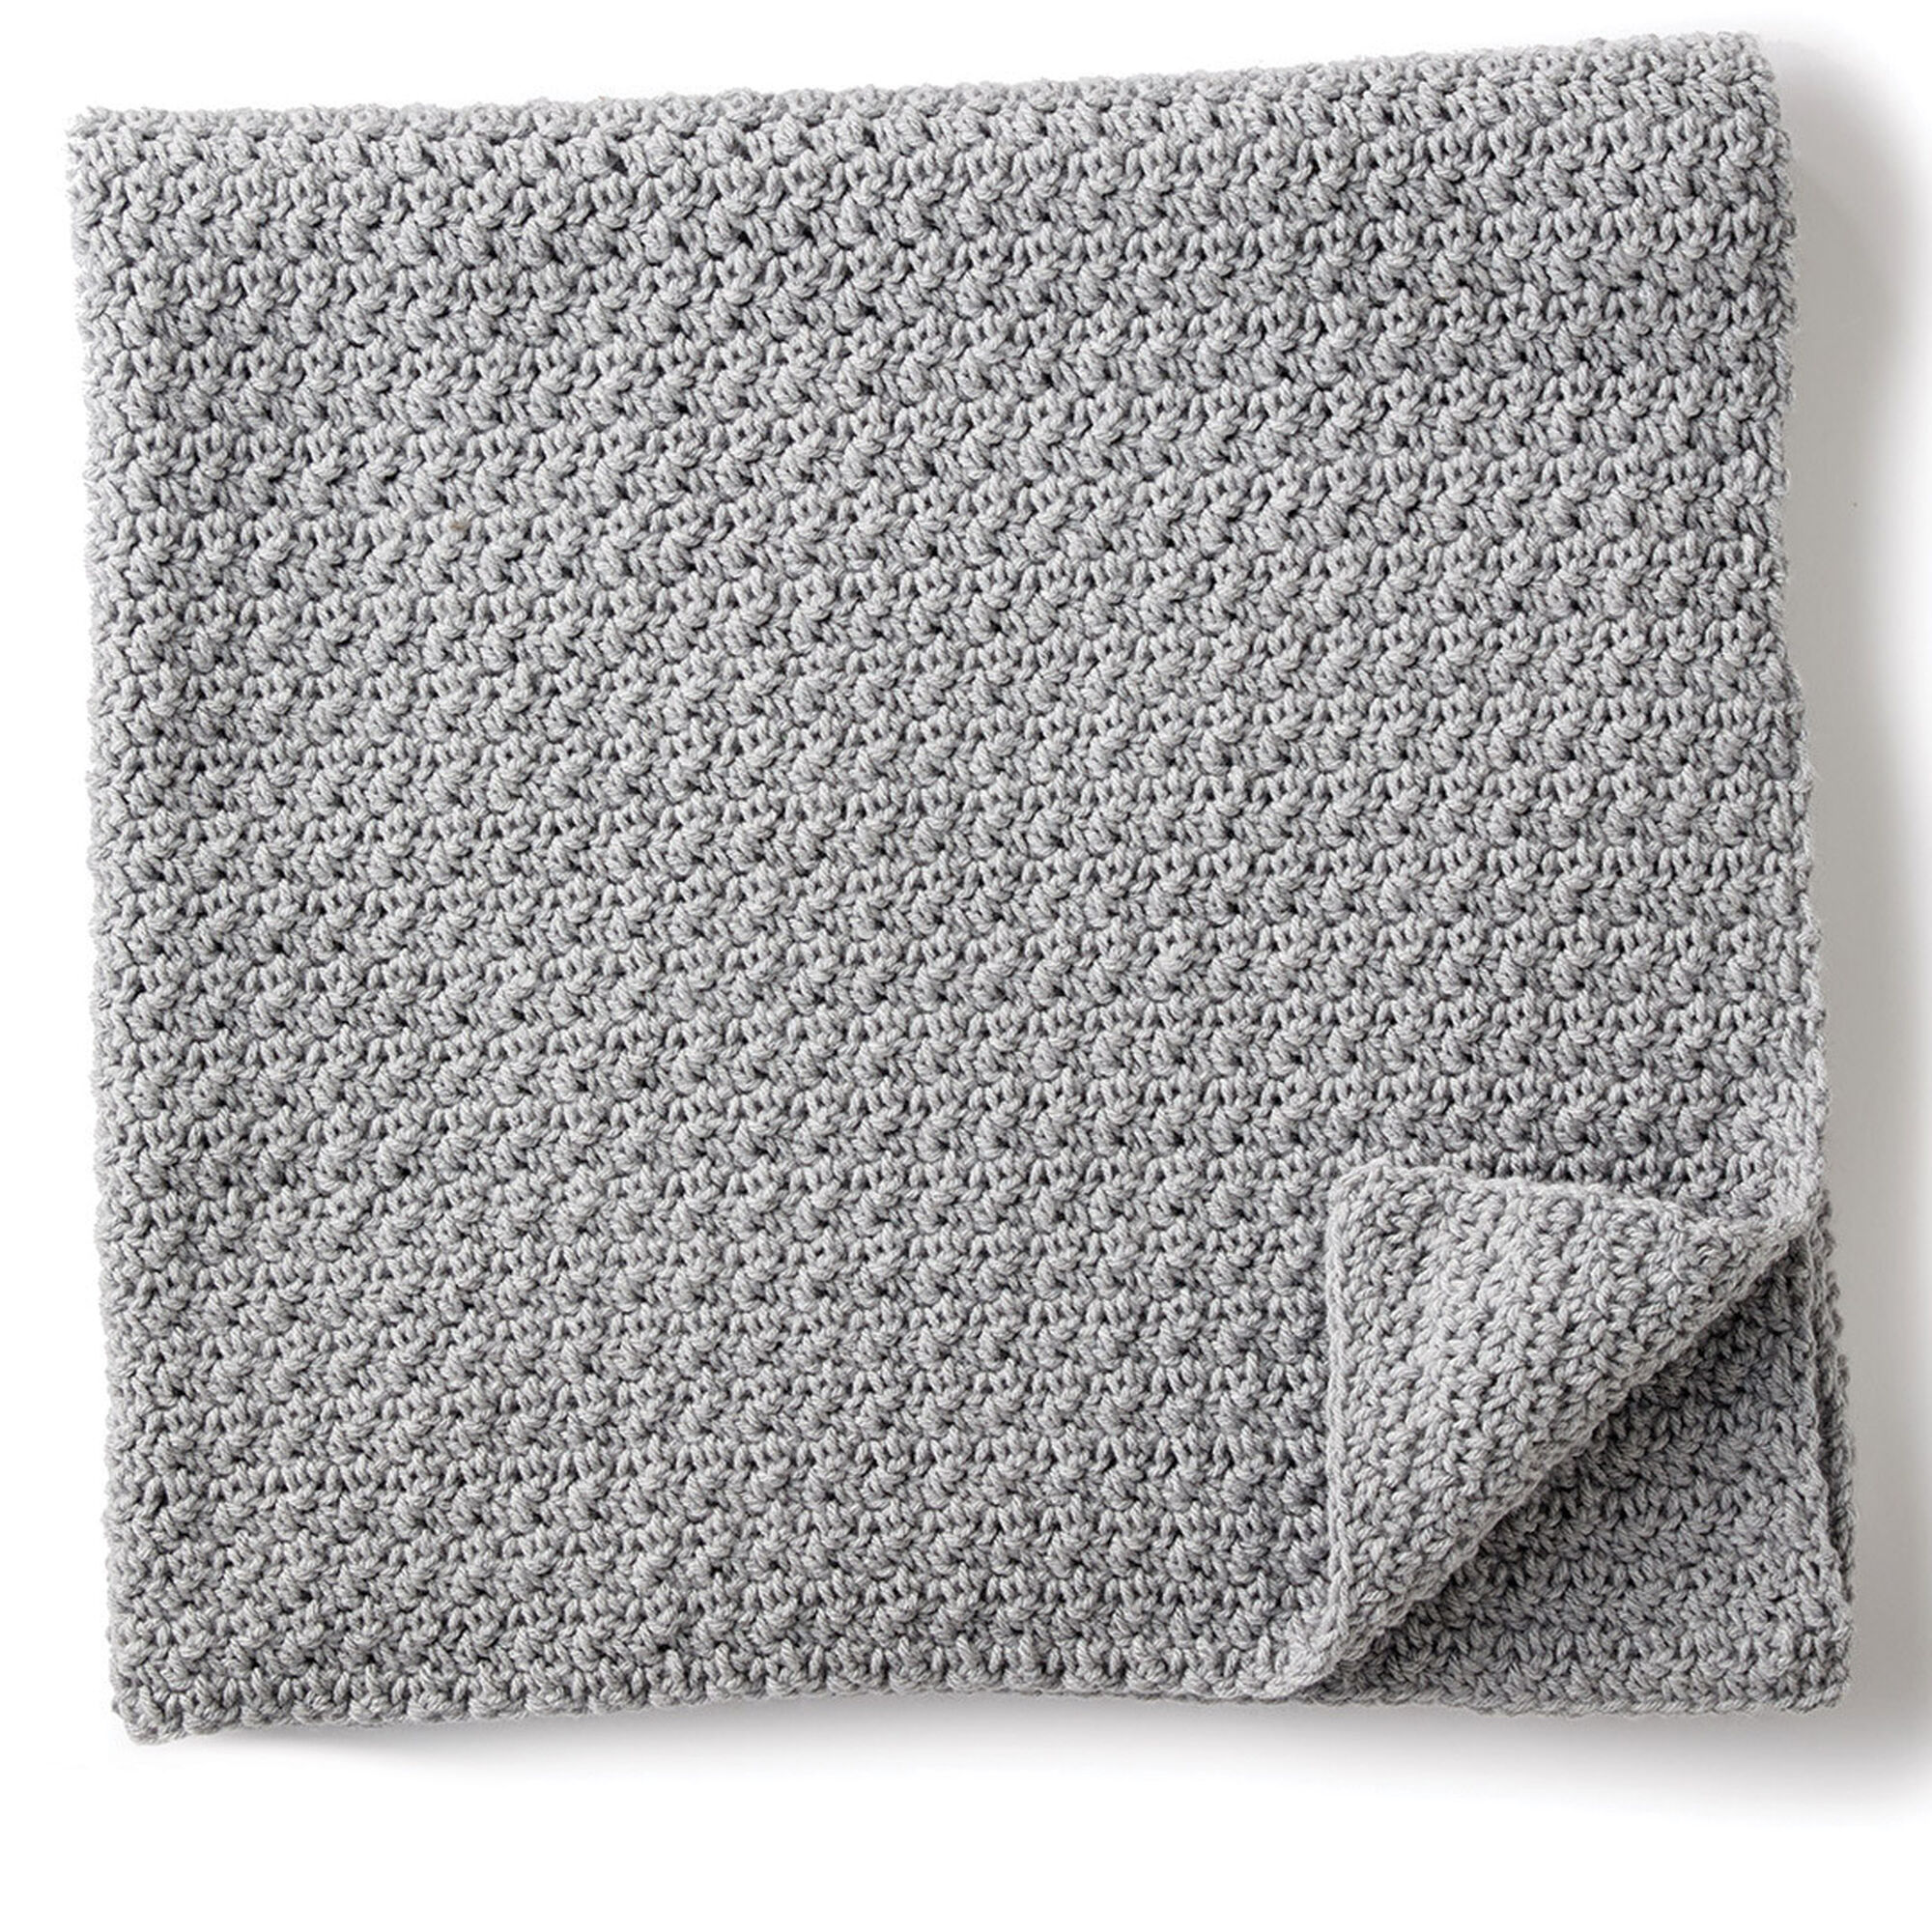 Caron Crochet Snuggle Pet Blanket, Cat | Yarnspirations